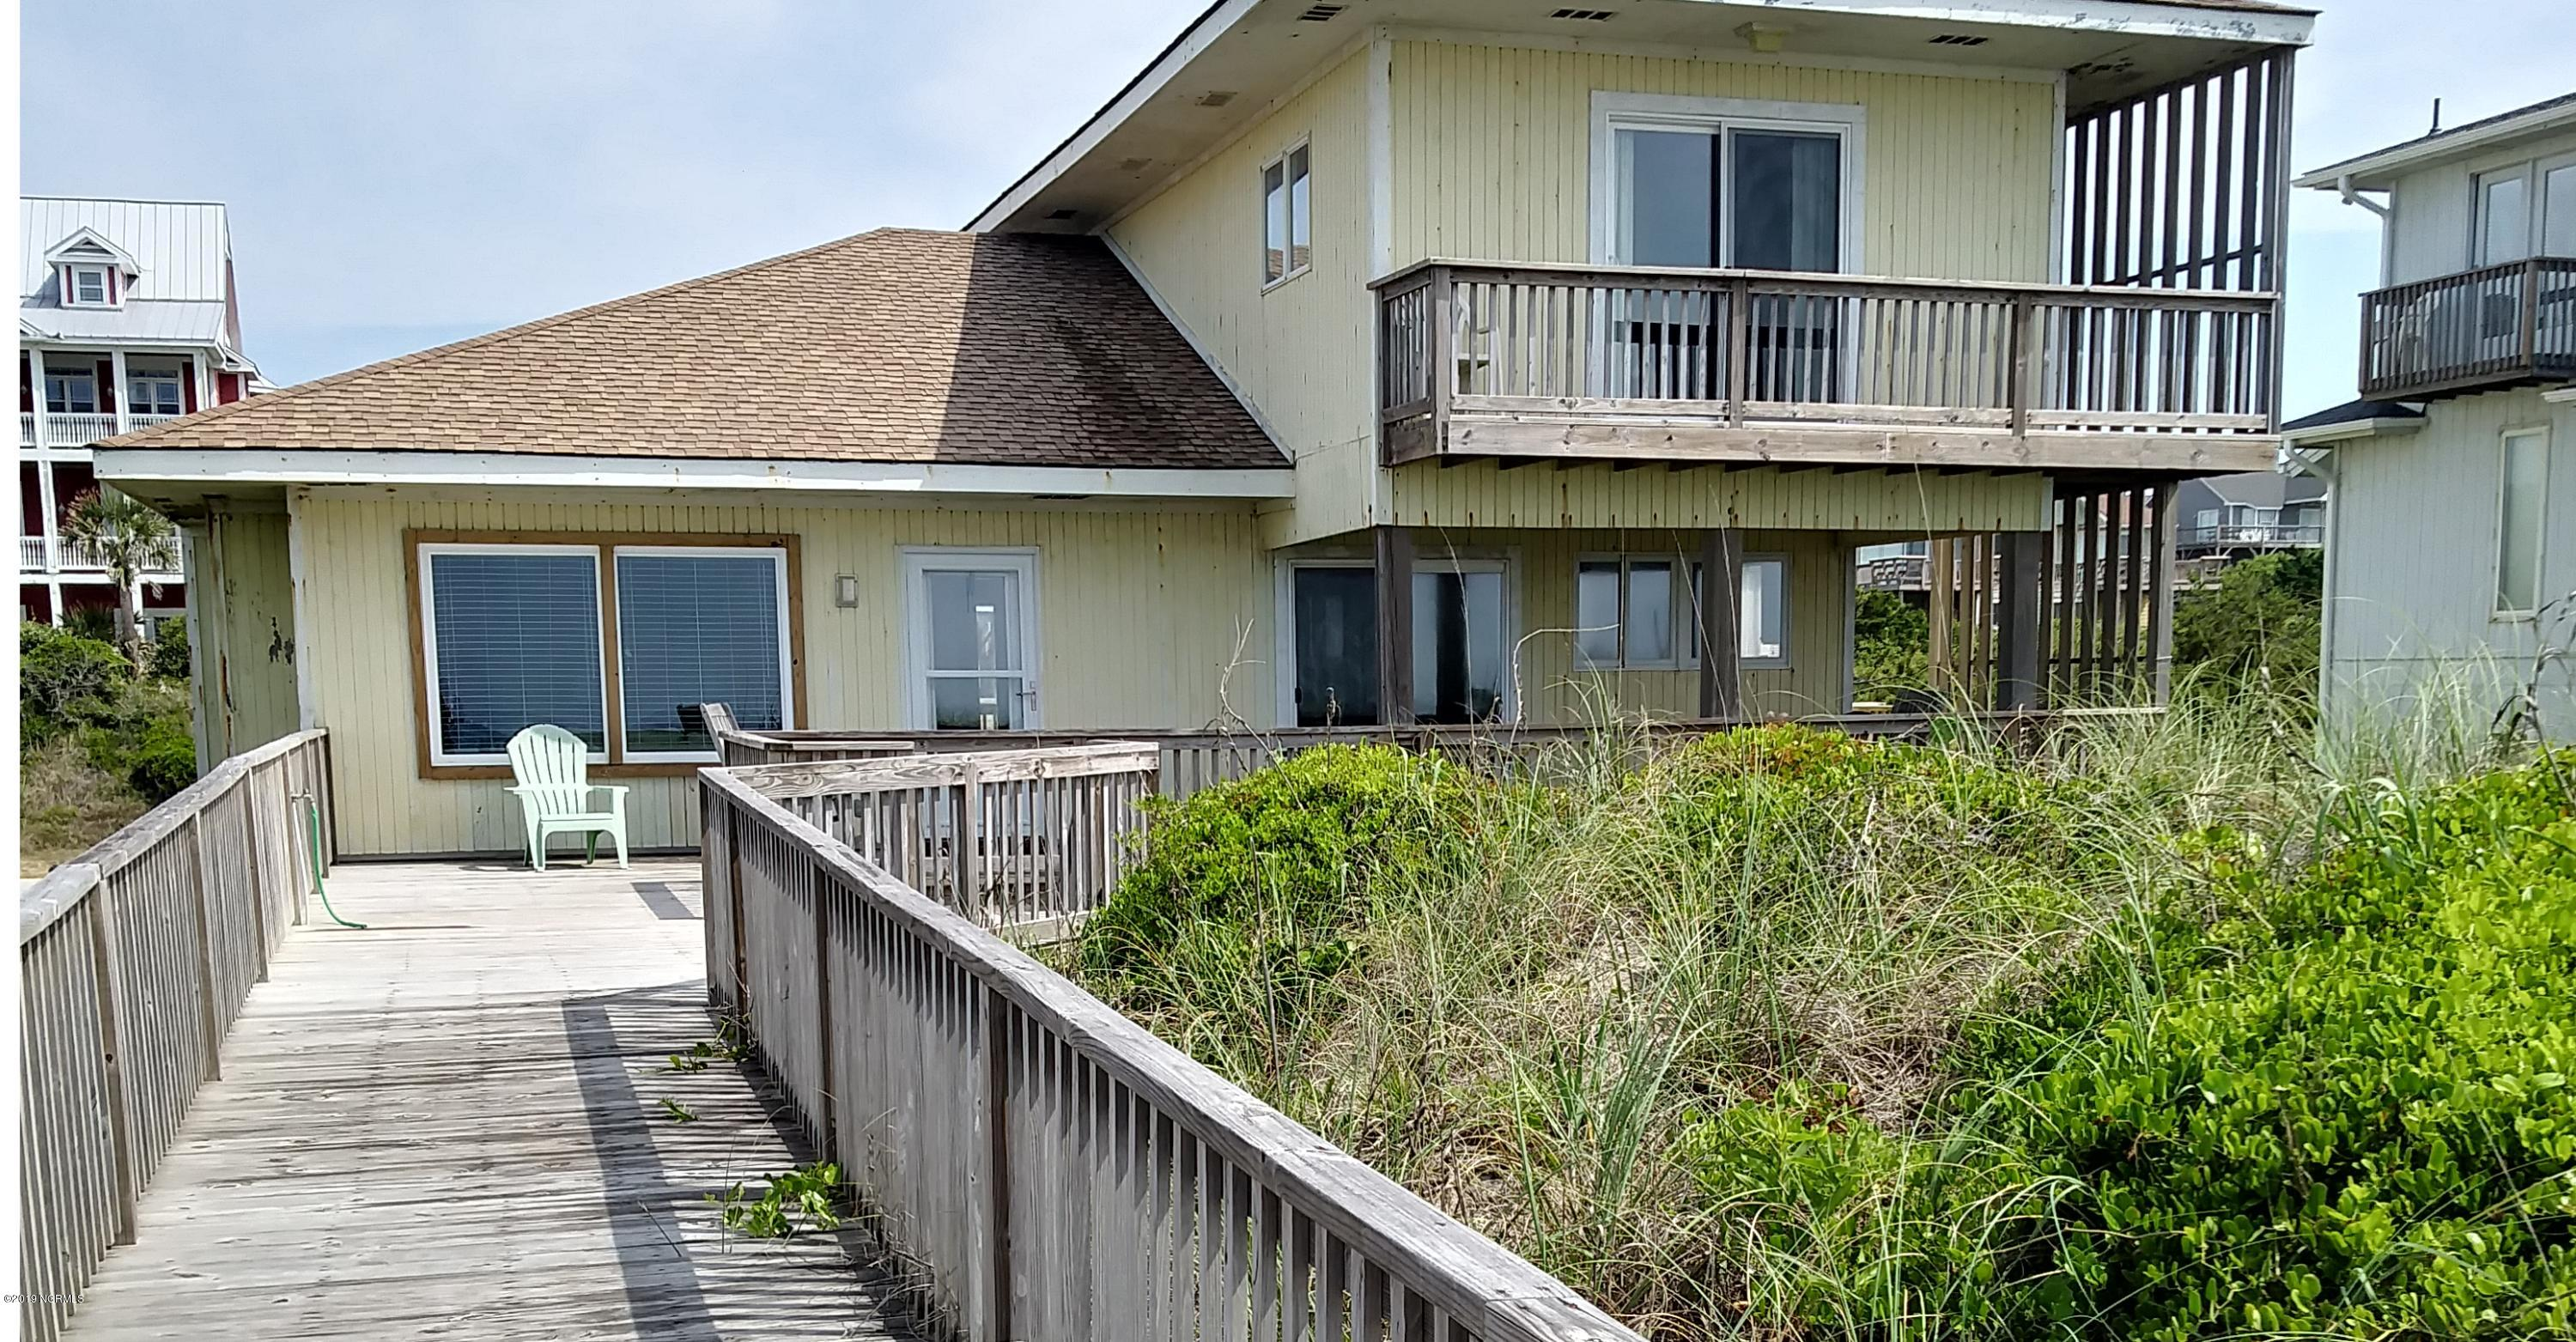 6607 Ocean Drive, Emerald Isle, North Carolina 28594, 3 Bedrooms Bedrooms, 7 Rooms Rooms,4 BathroomsBathrooms,Single family residence,For sale,Ocean,100176449